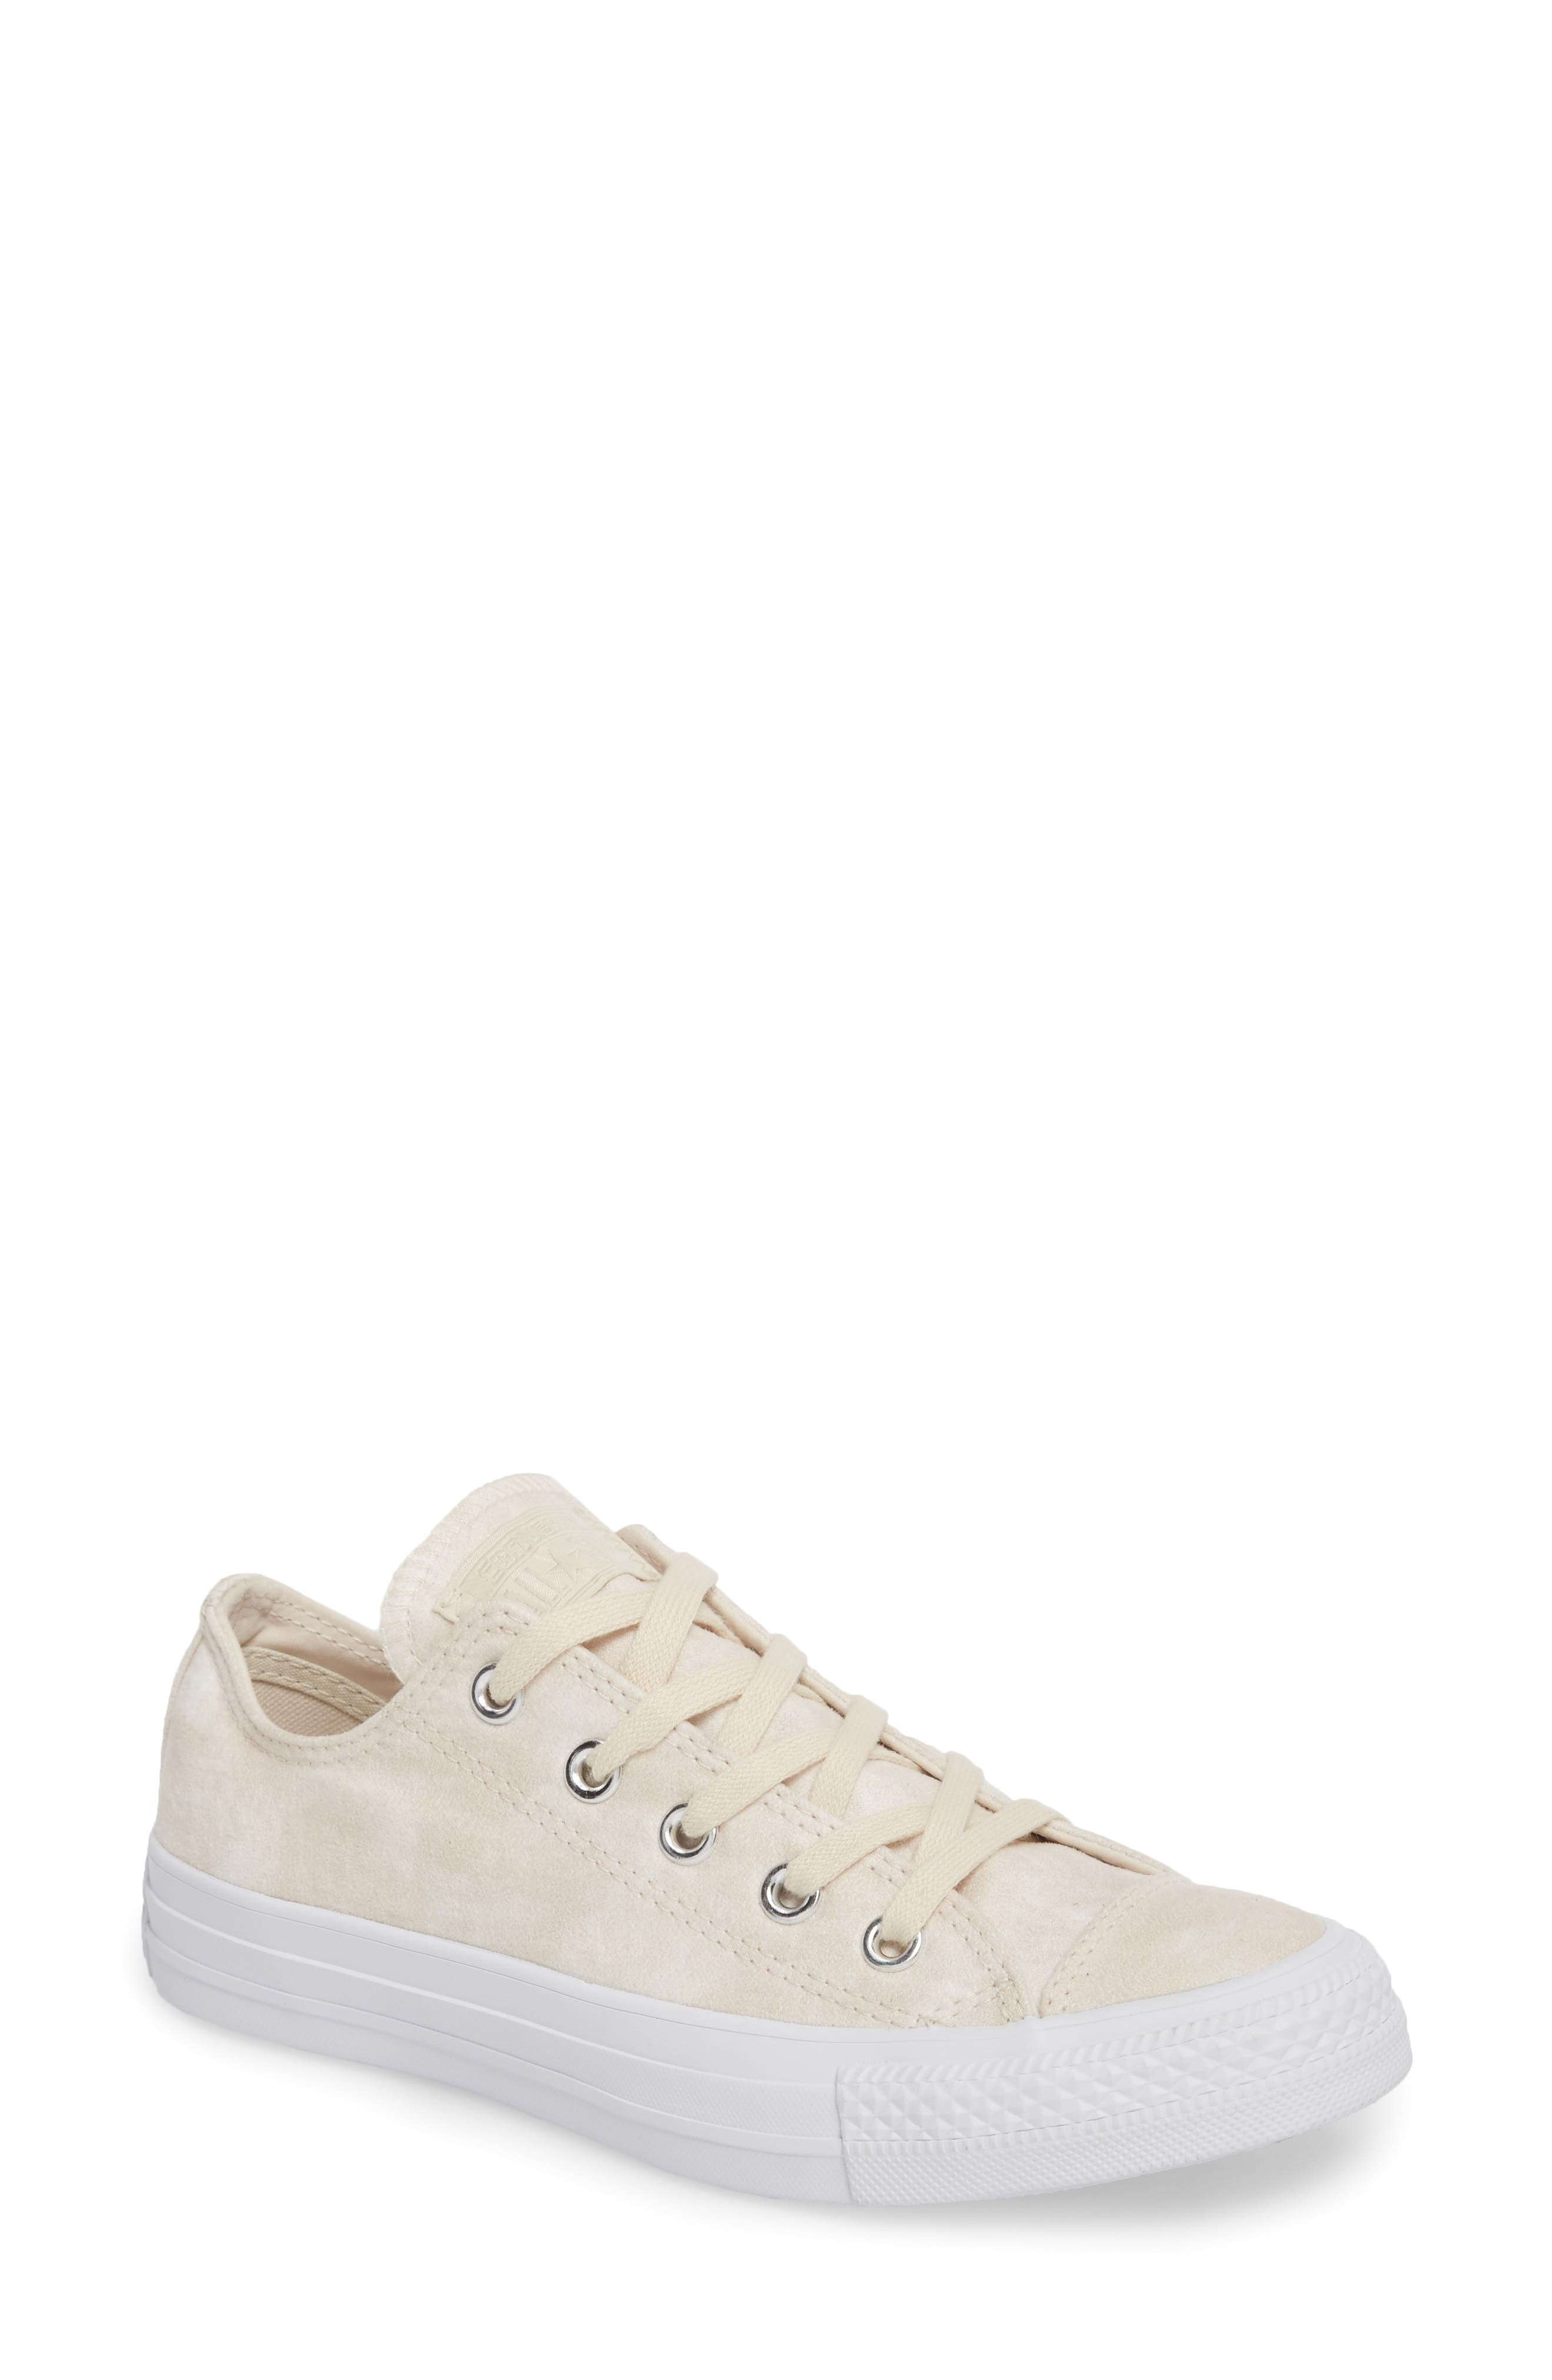 Chuck Taylor<sup>®</sup> All Star<sup>®</sup> Peached Low Top Sneaker,                             Main thumbnail 1, color,                             248